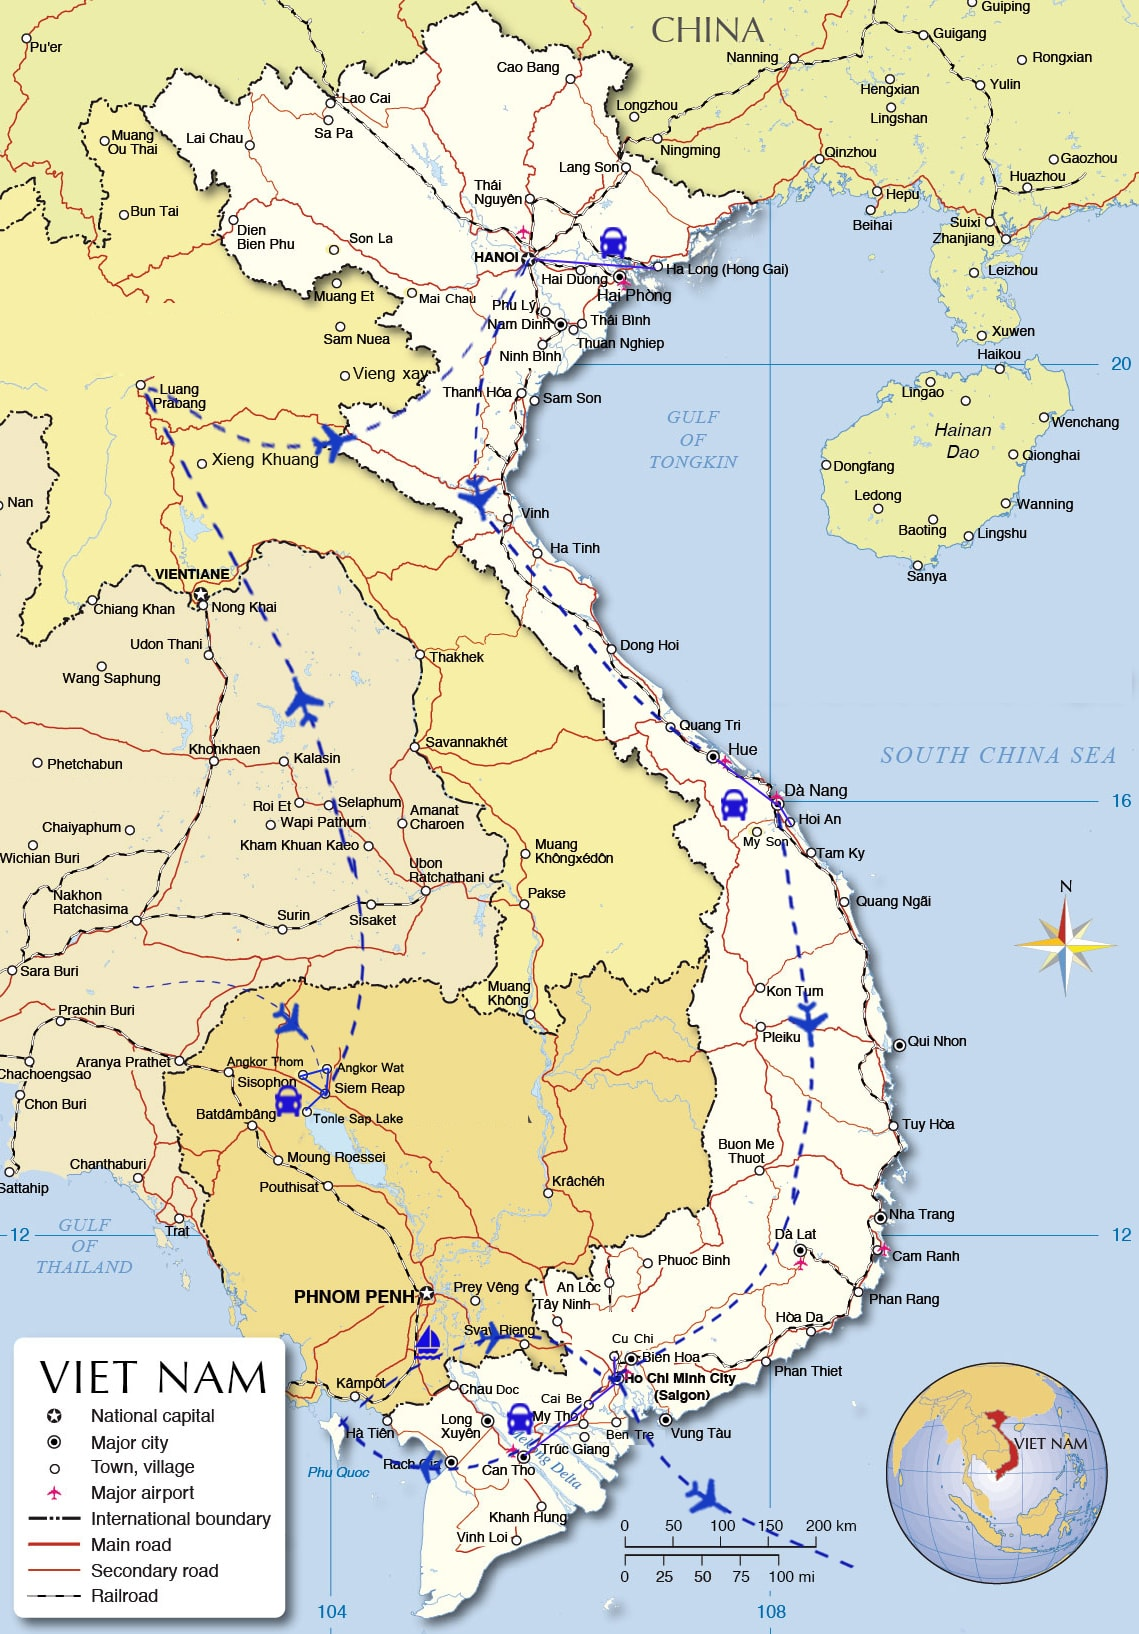 IFT01: Indochina Family Holidays - 21 days from Siem Reap map